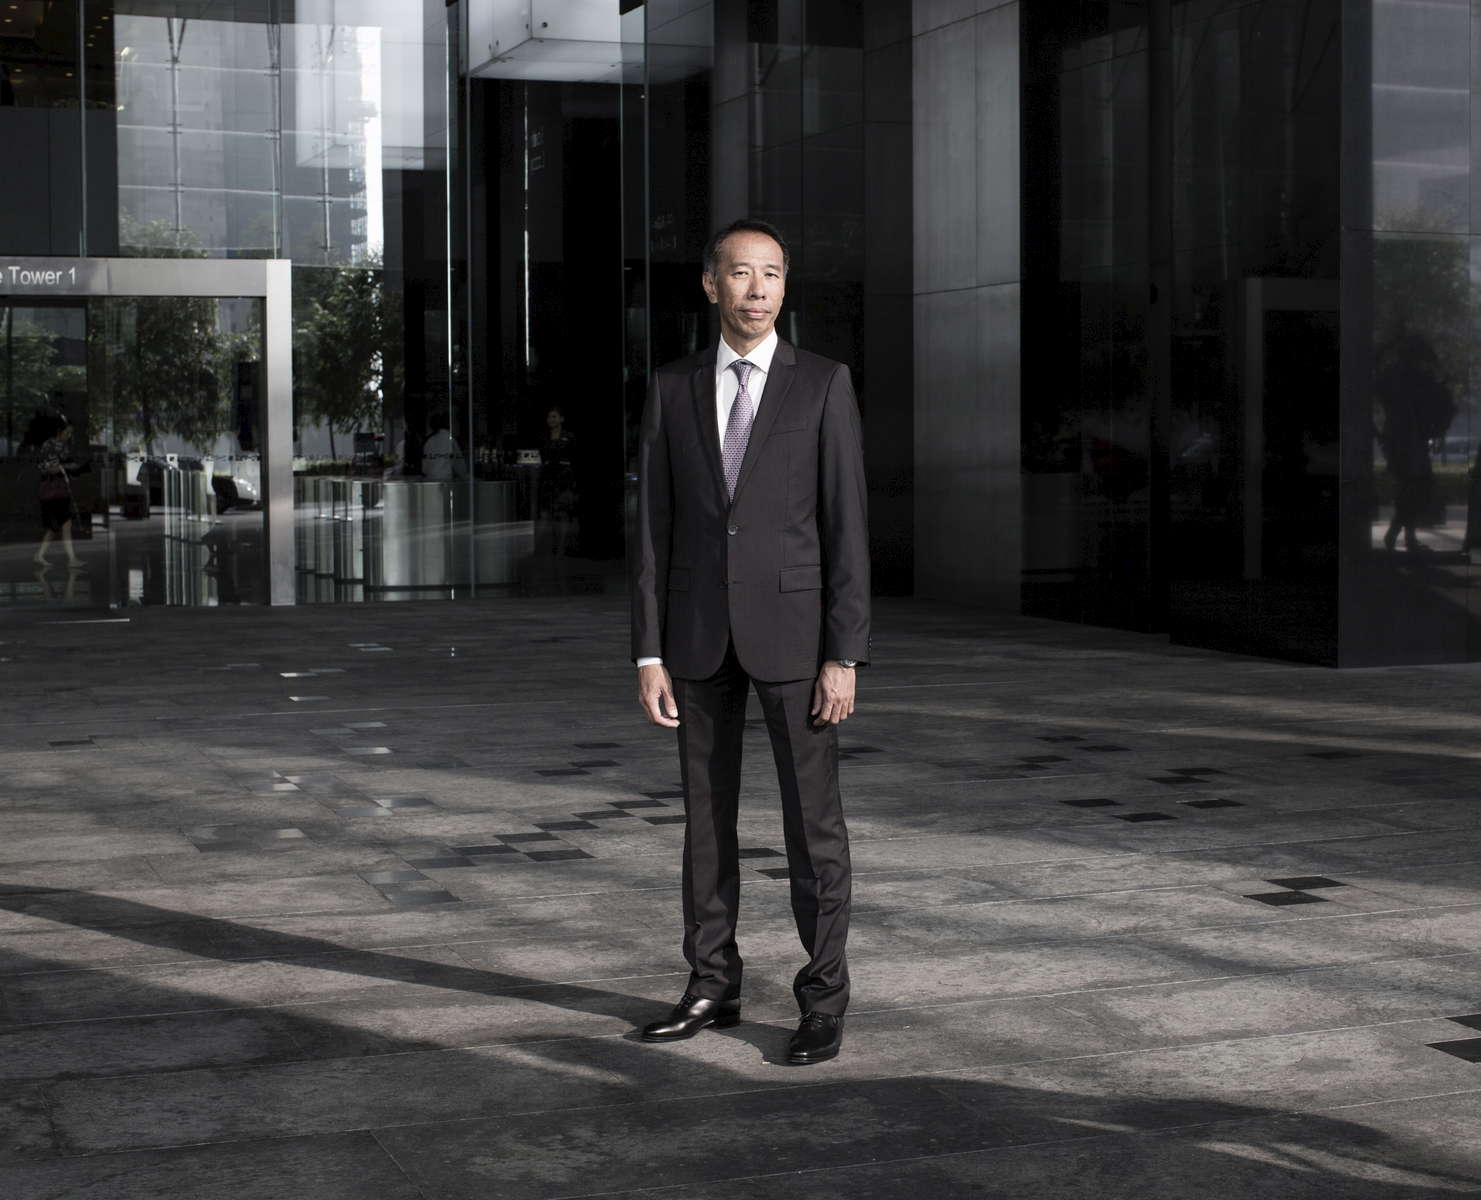 Fook Sun Ng in his office in Wirecard head quarter in Singapore, 16, March 2015